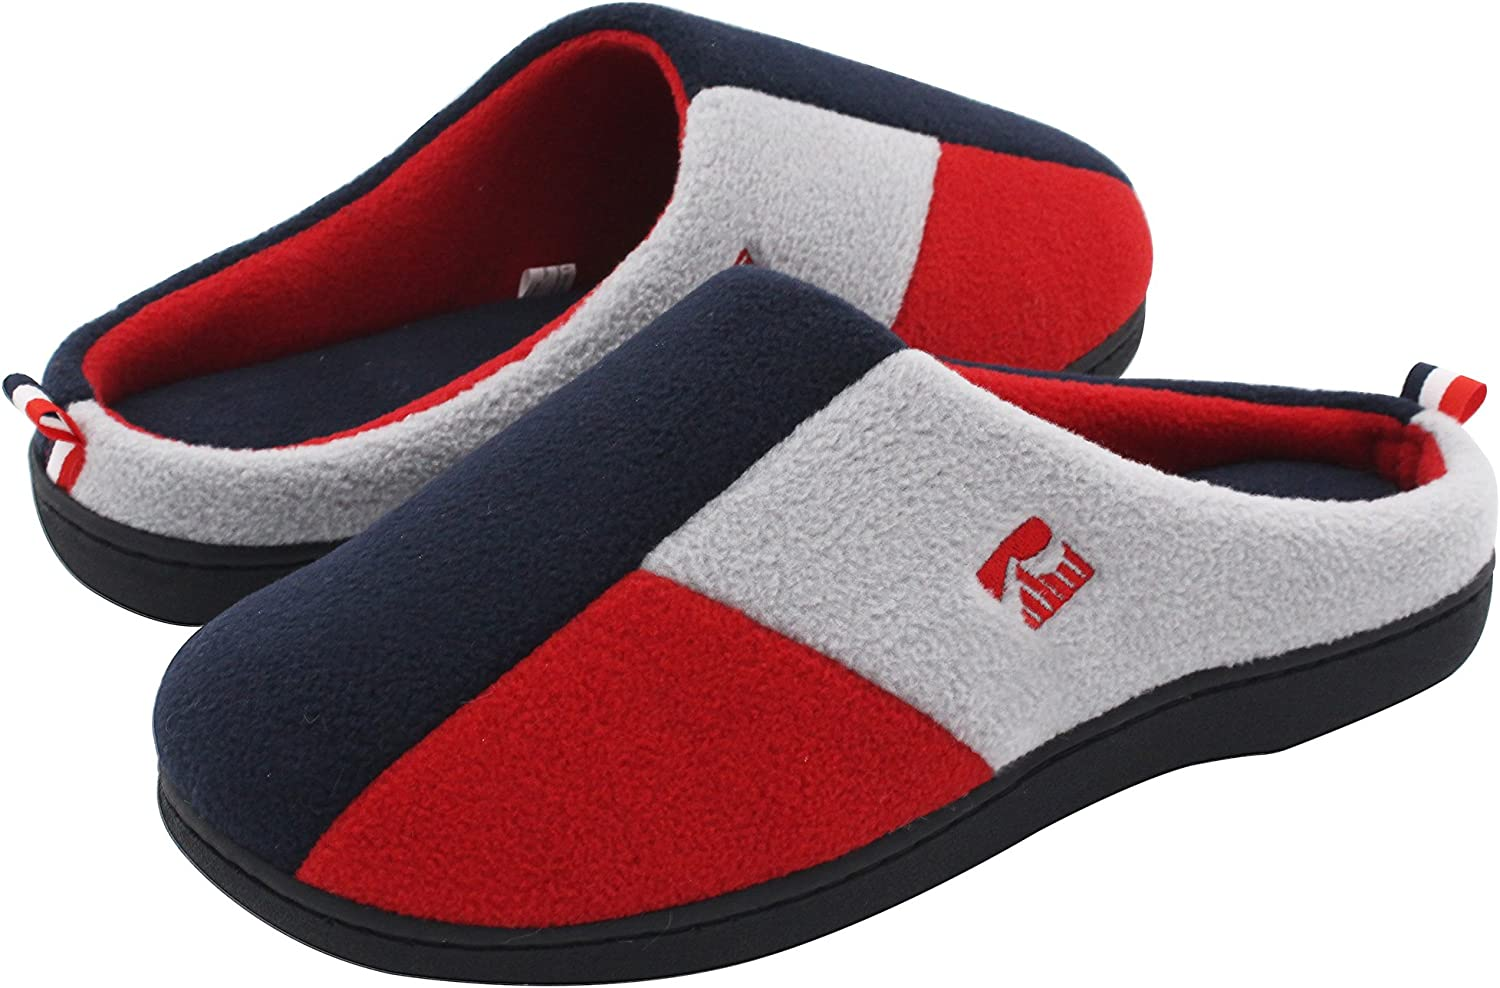 RockDove Women's Tri-color Memory Foam Slippers Winter Warm bluee Red Grey color Blocking Slip On Indoor Clogs for Home & Lounging